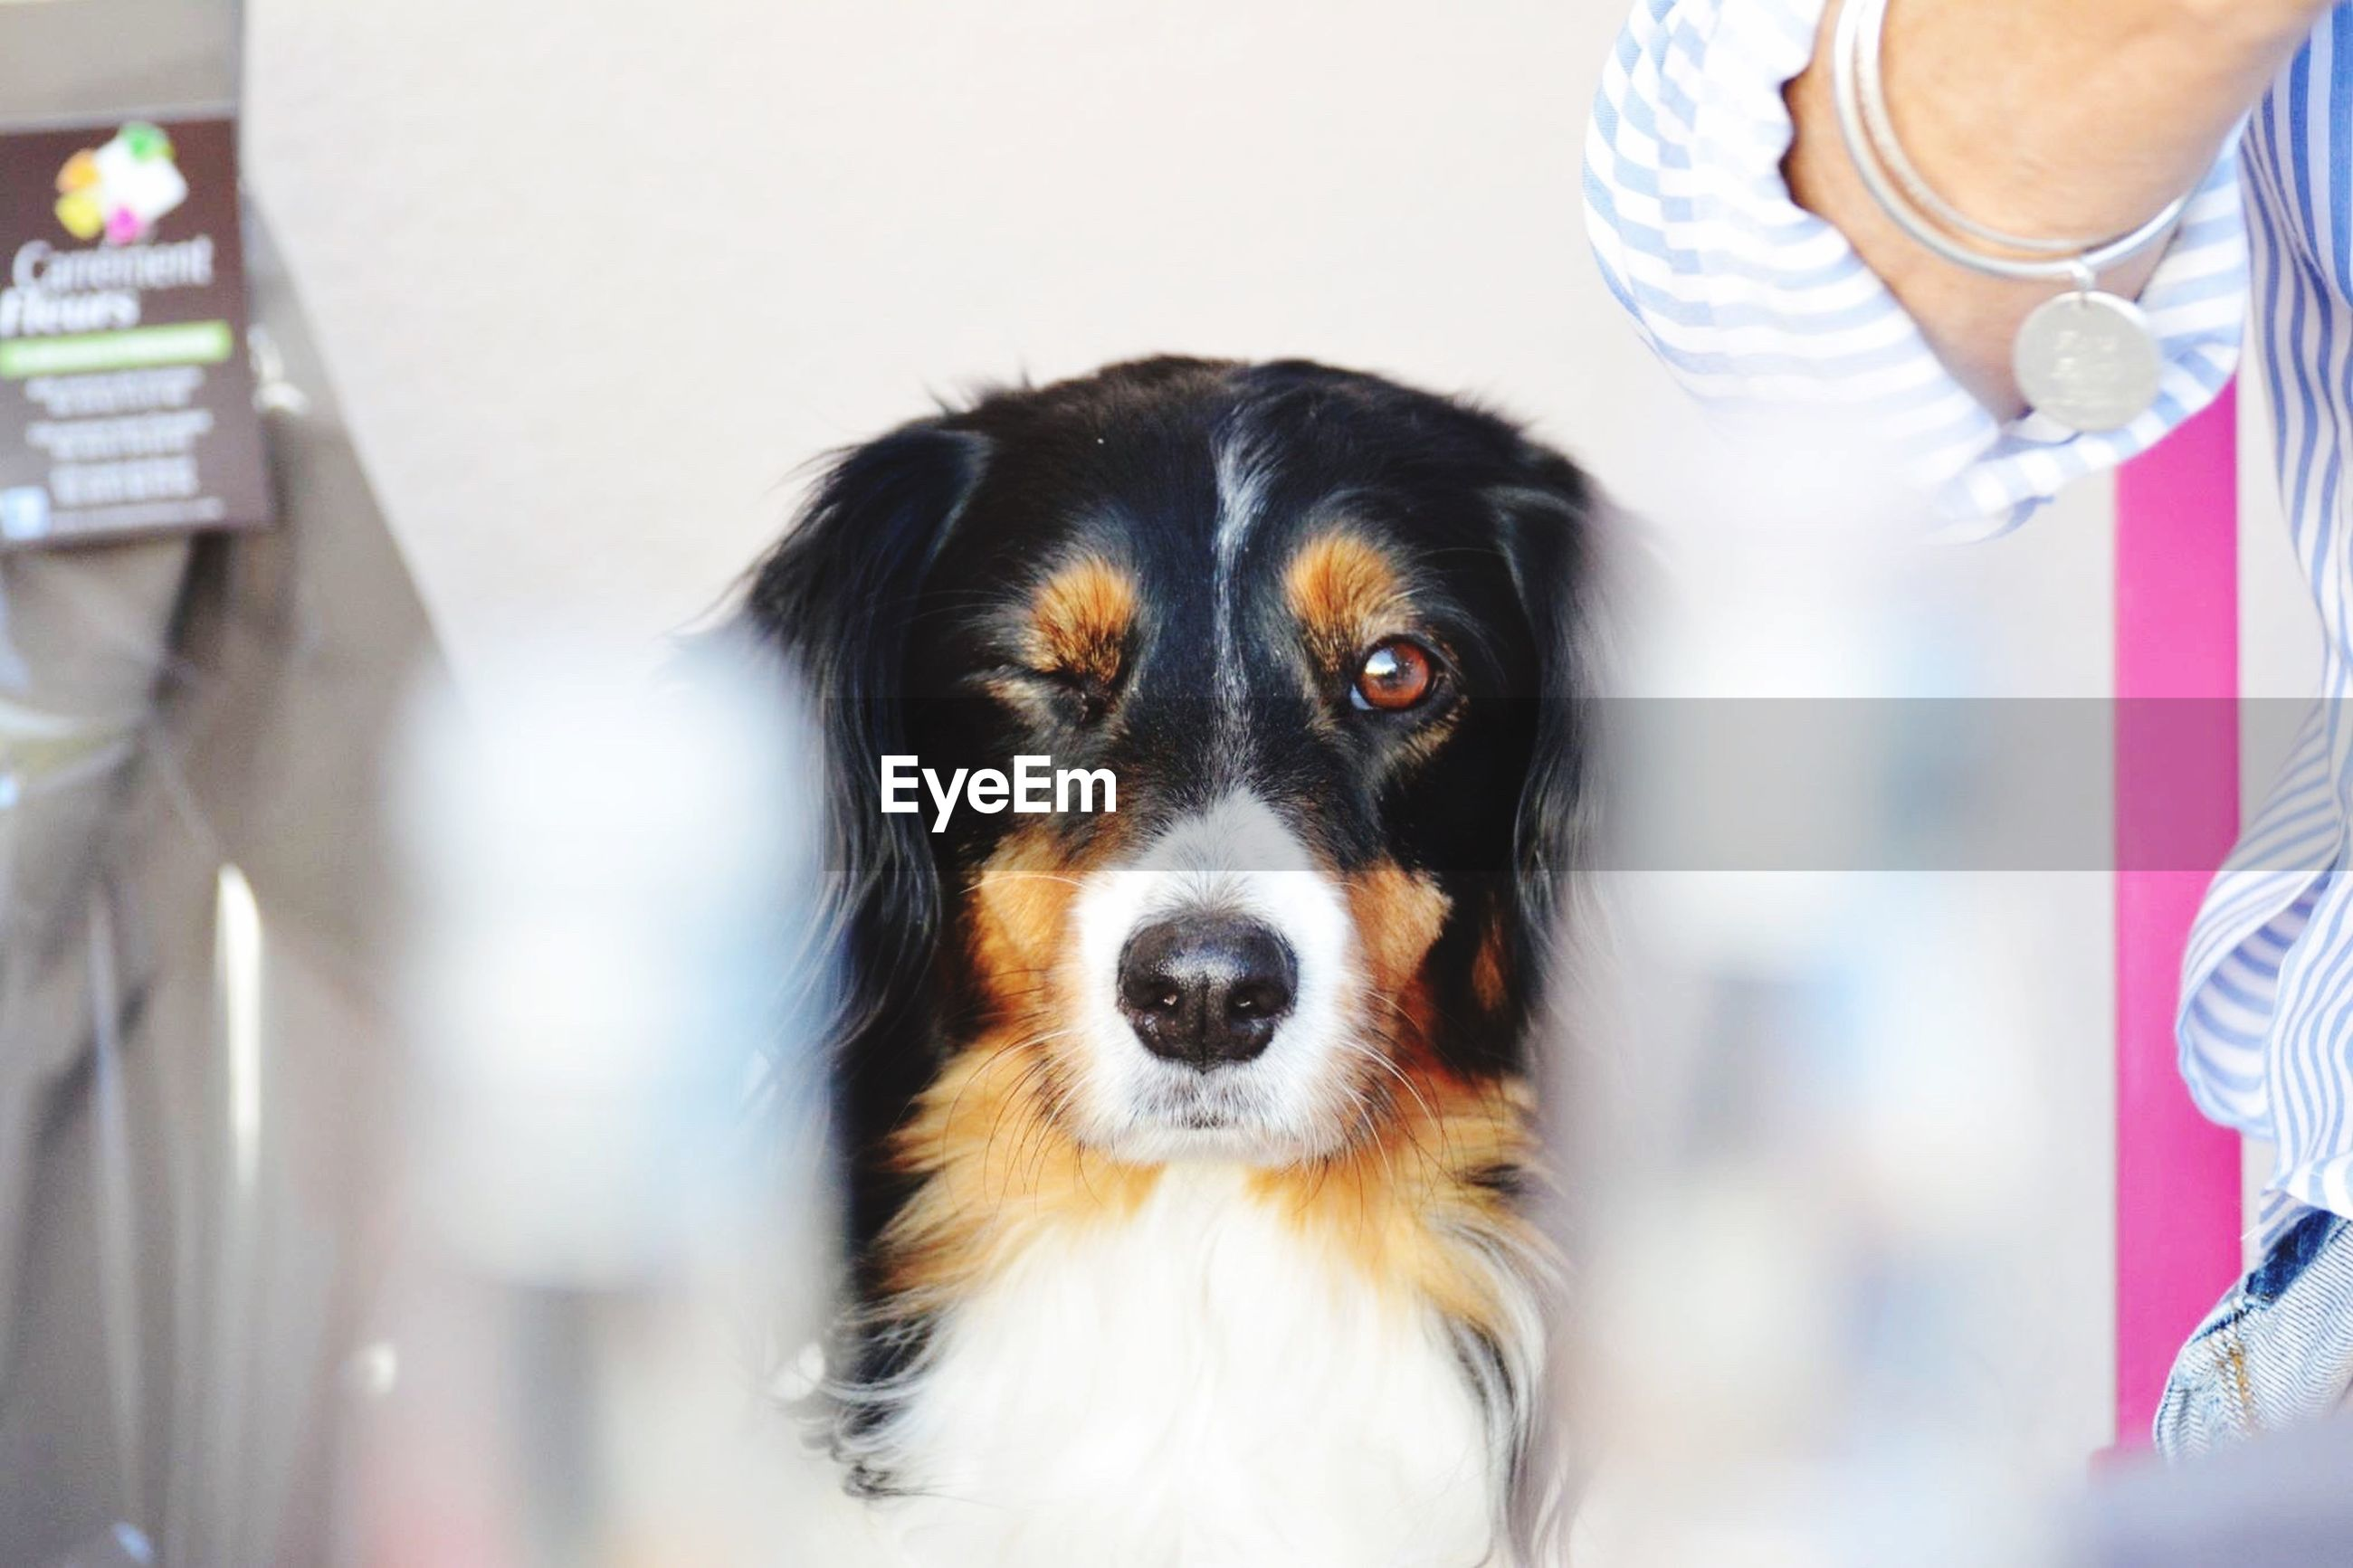 one animal, animal themes, pets, domestic animals, dog, focus on foreground, indoors, portrait, mammal, looking at camera, close-up, part of, animal head, holding, person, lifestyles, front view